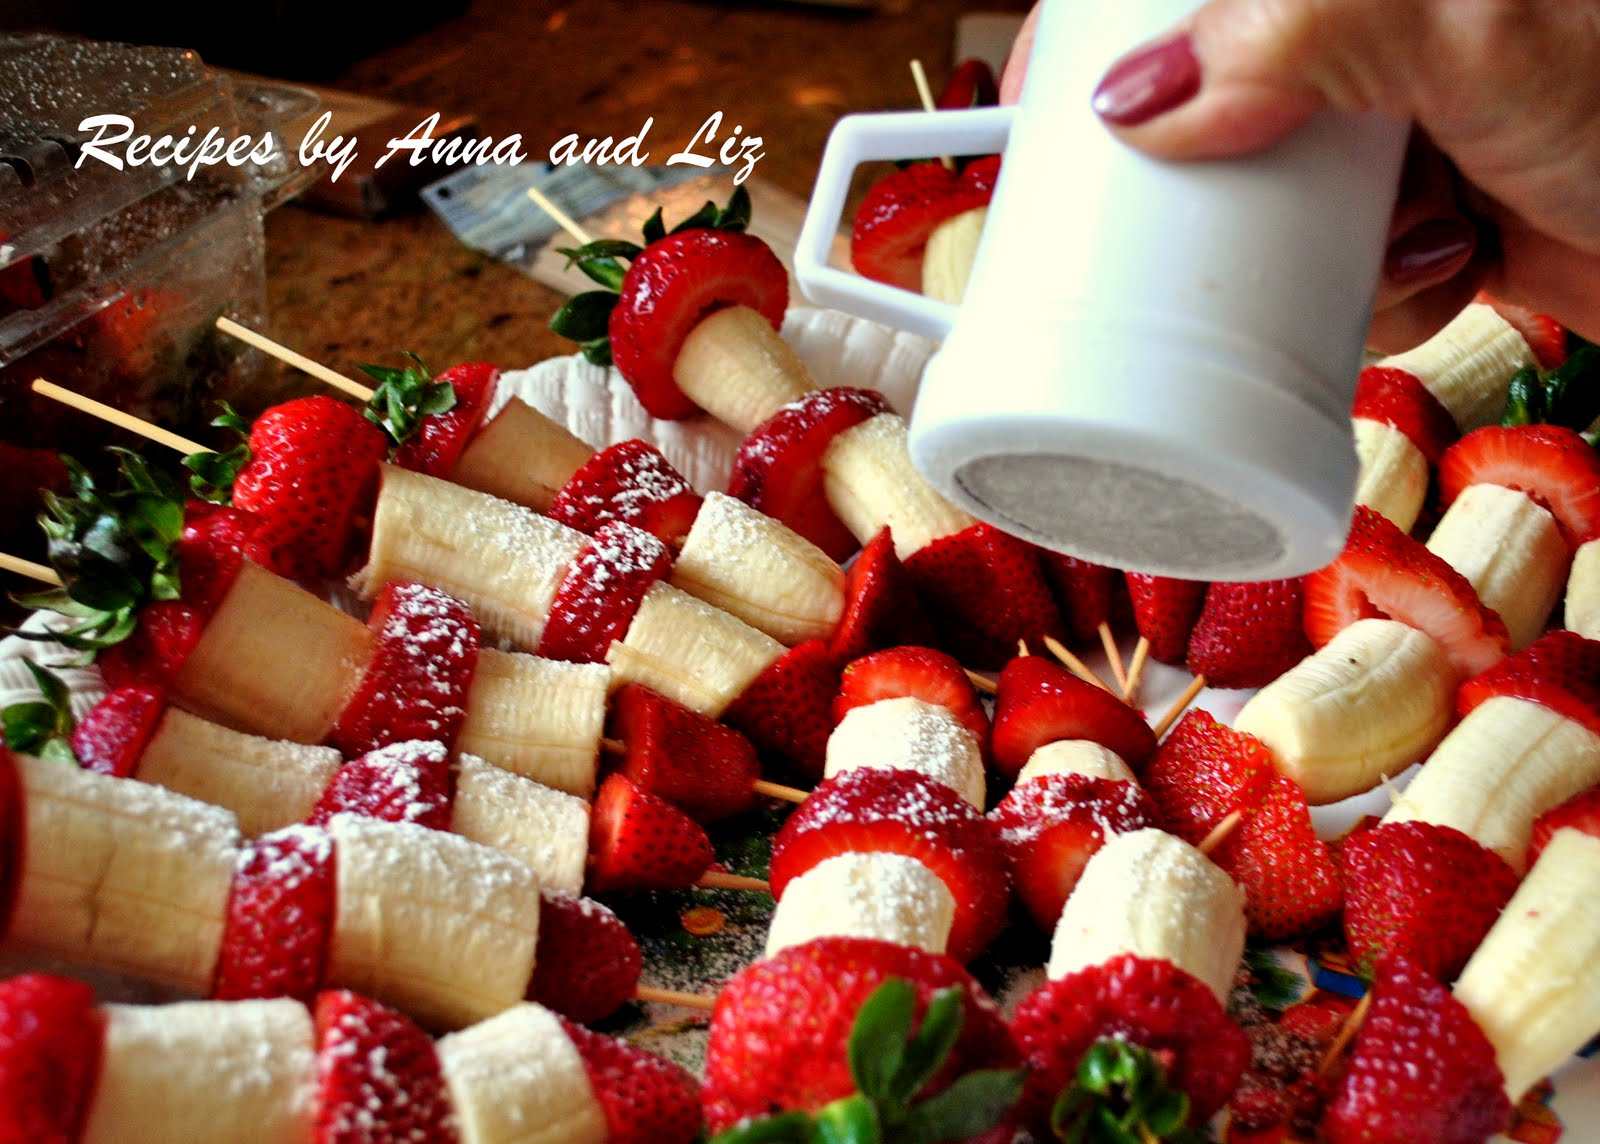 ... ... by Anna and Liz: EASY Strawberry and Banana Kabobs with Chocolate